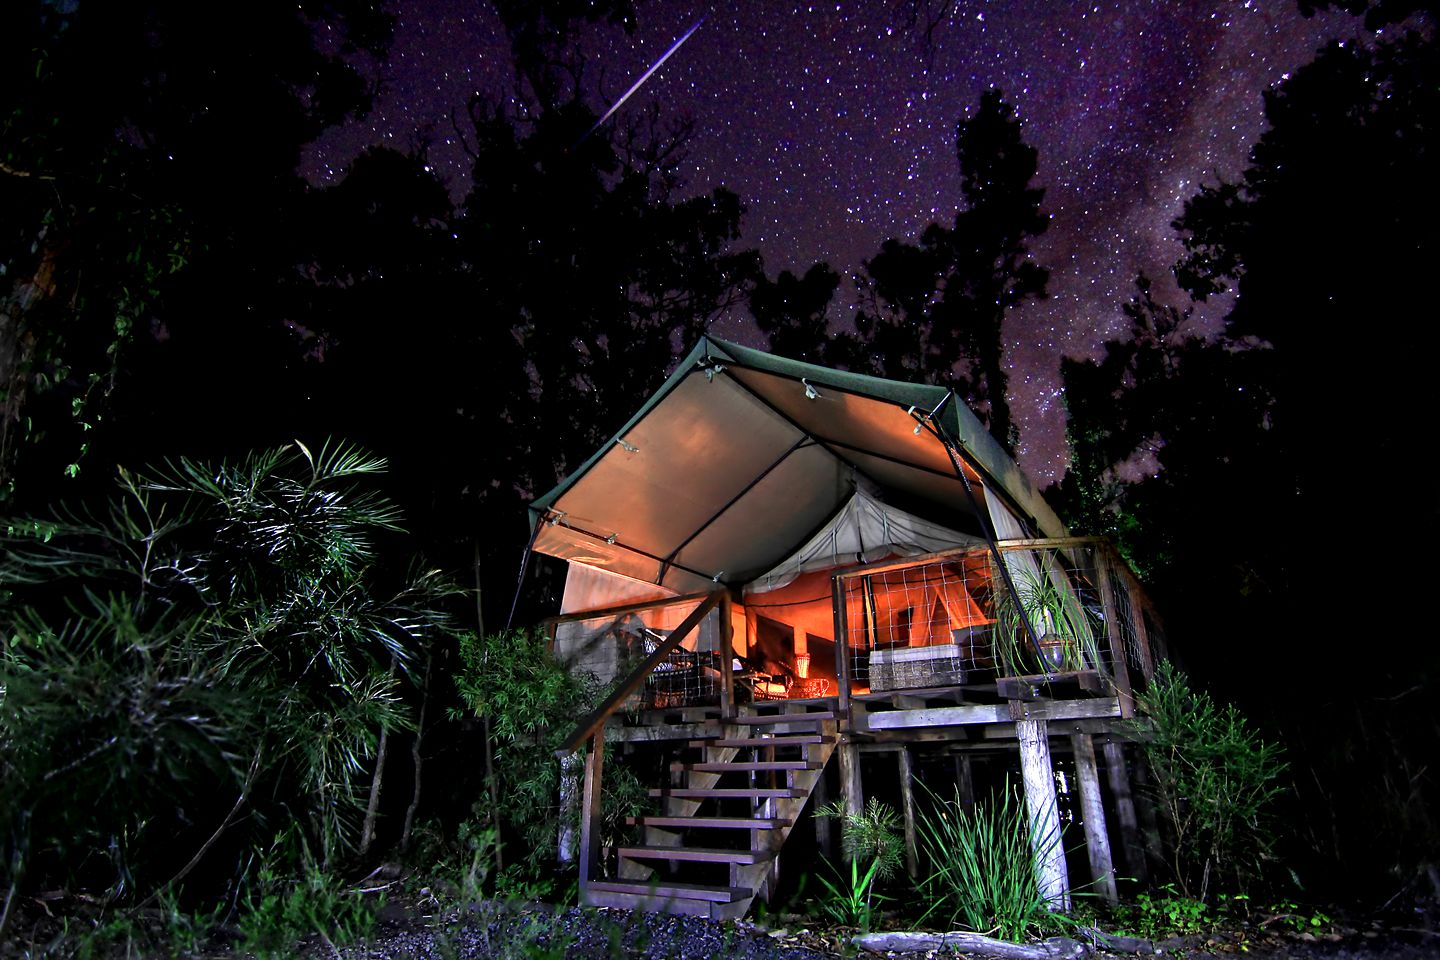 Tented Cabins (Woollamia, New South Wales, Australia)